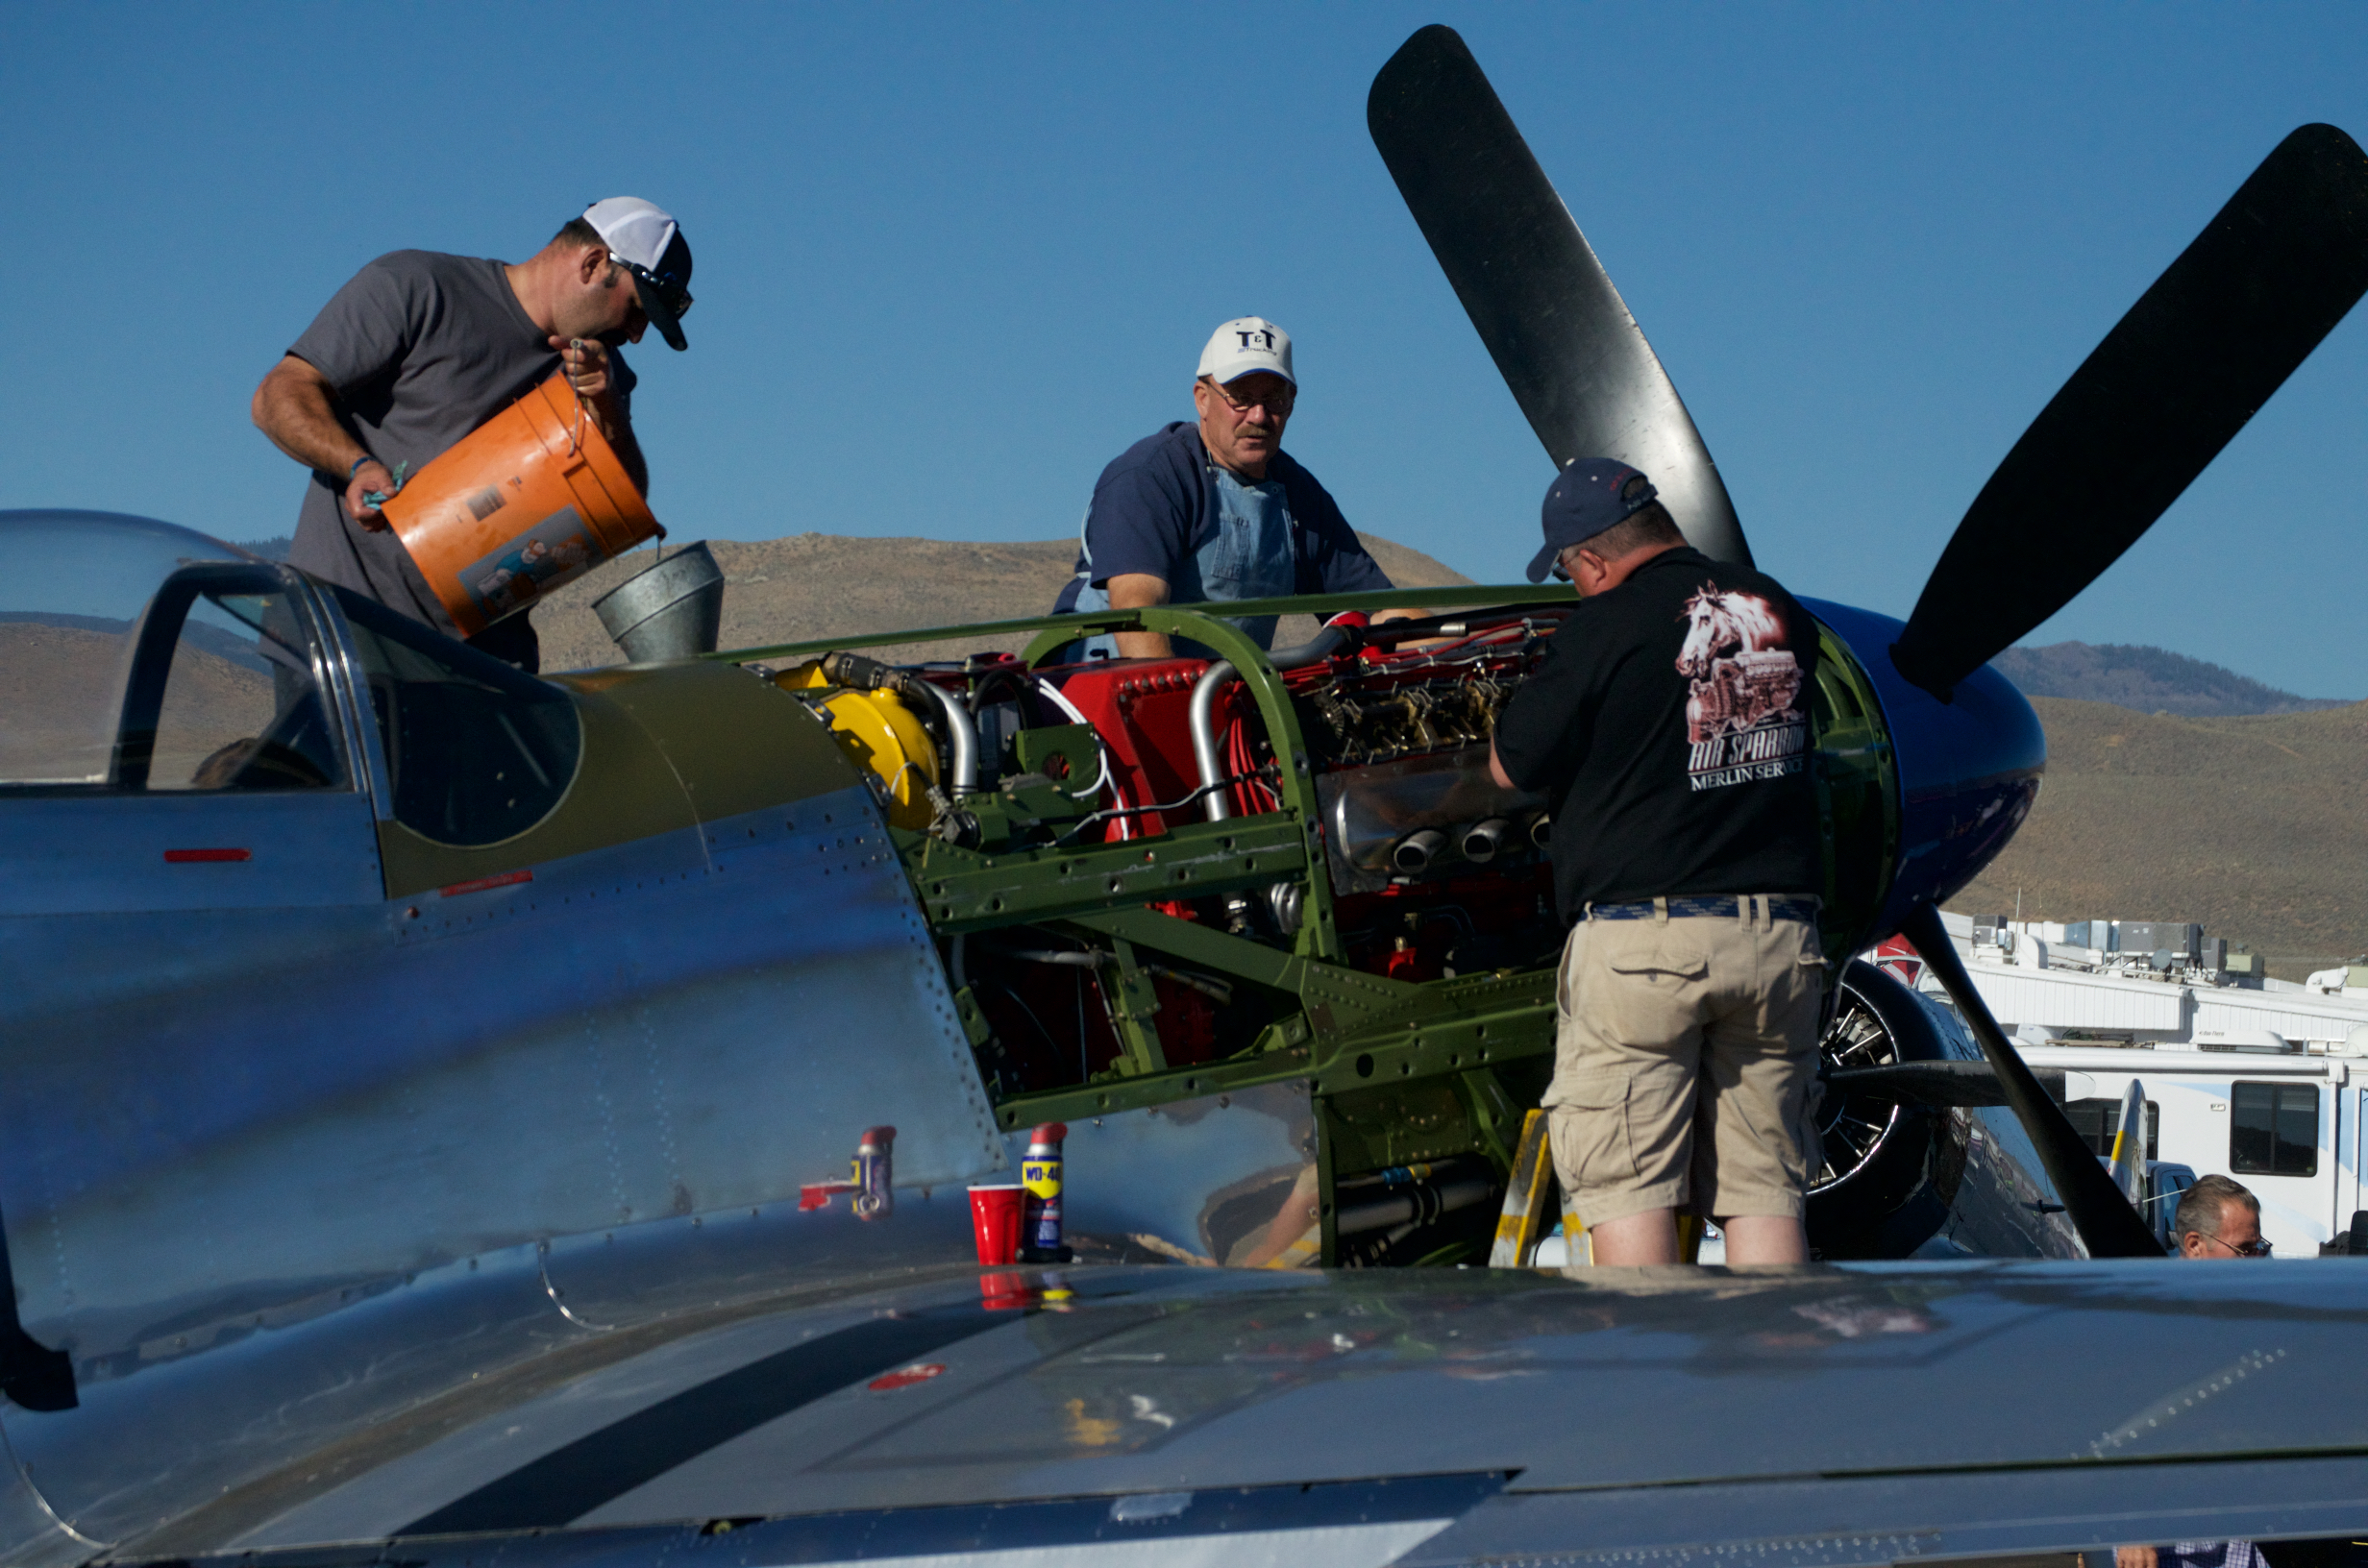 Race Prep. Reno Stead Airport, National Championship Air Races 2015